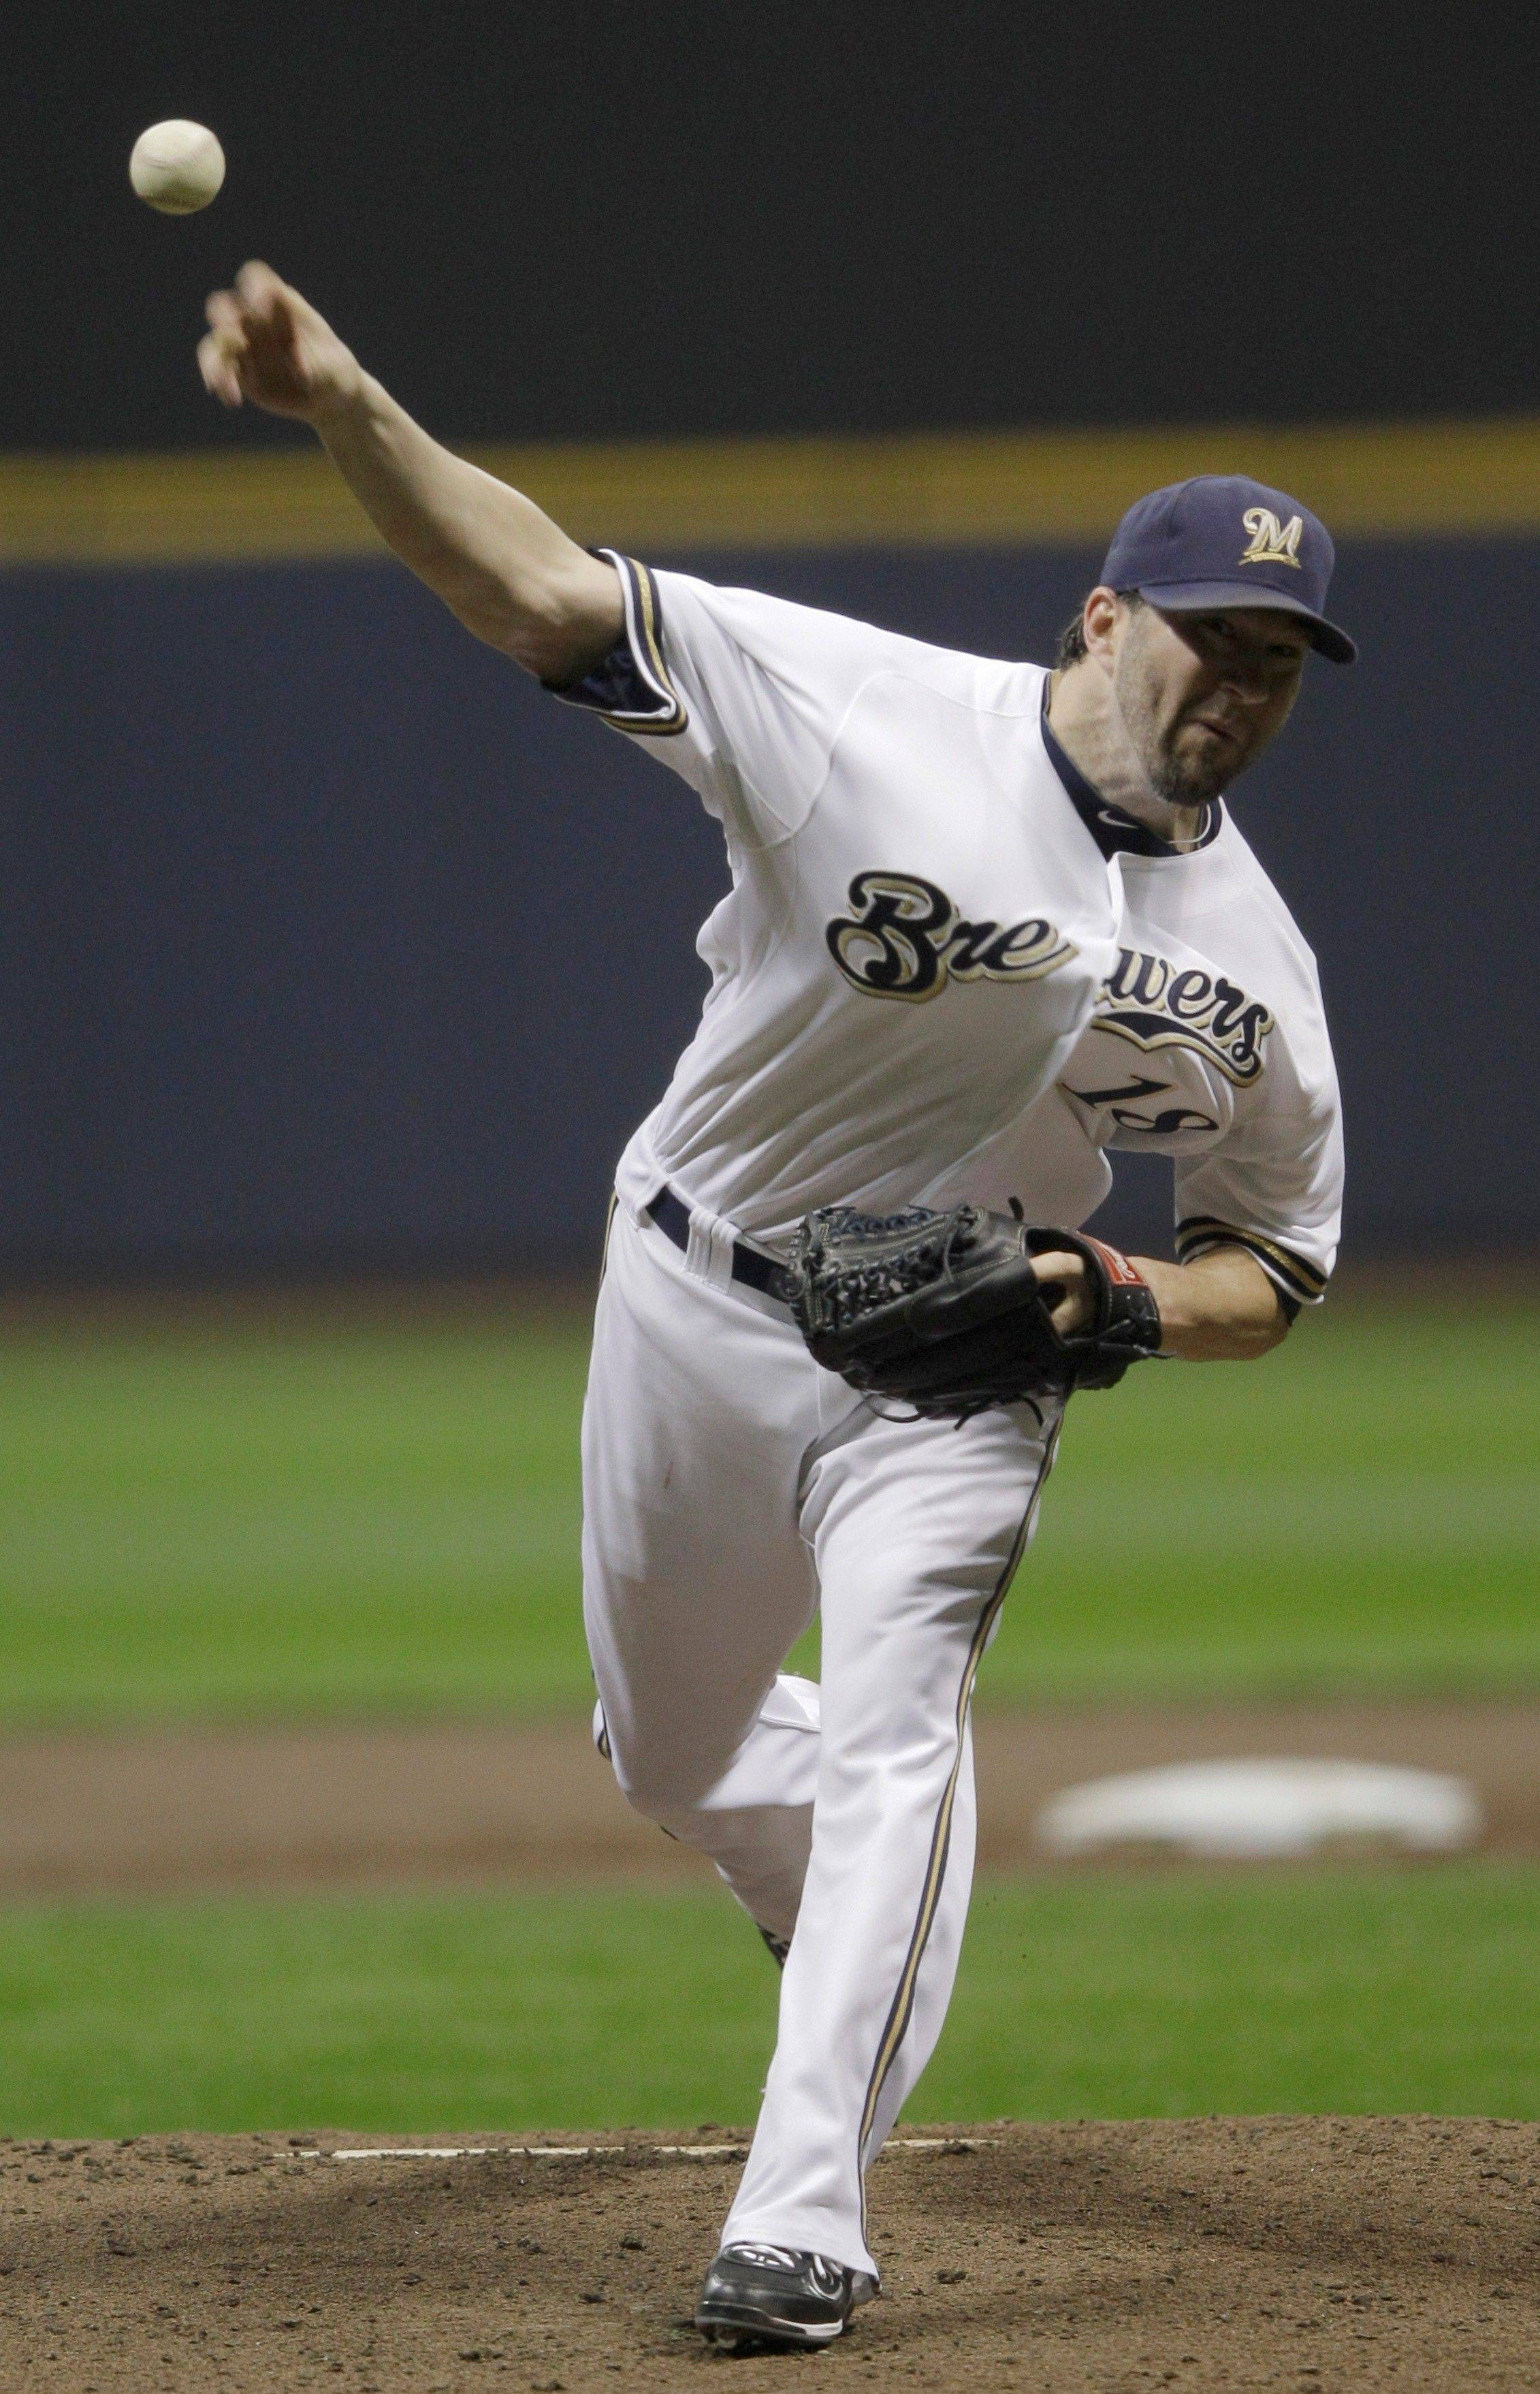 Starter Shaun Marcum lasted only one inning against St. Louis on Sunday night.